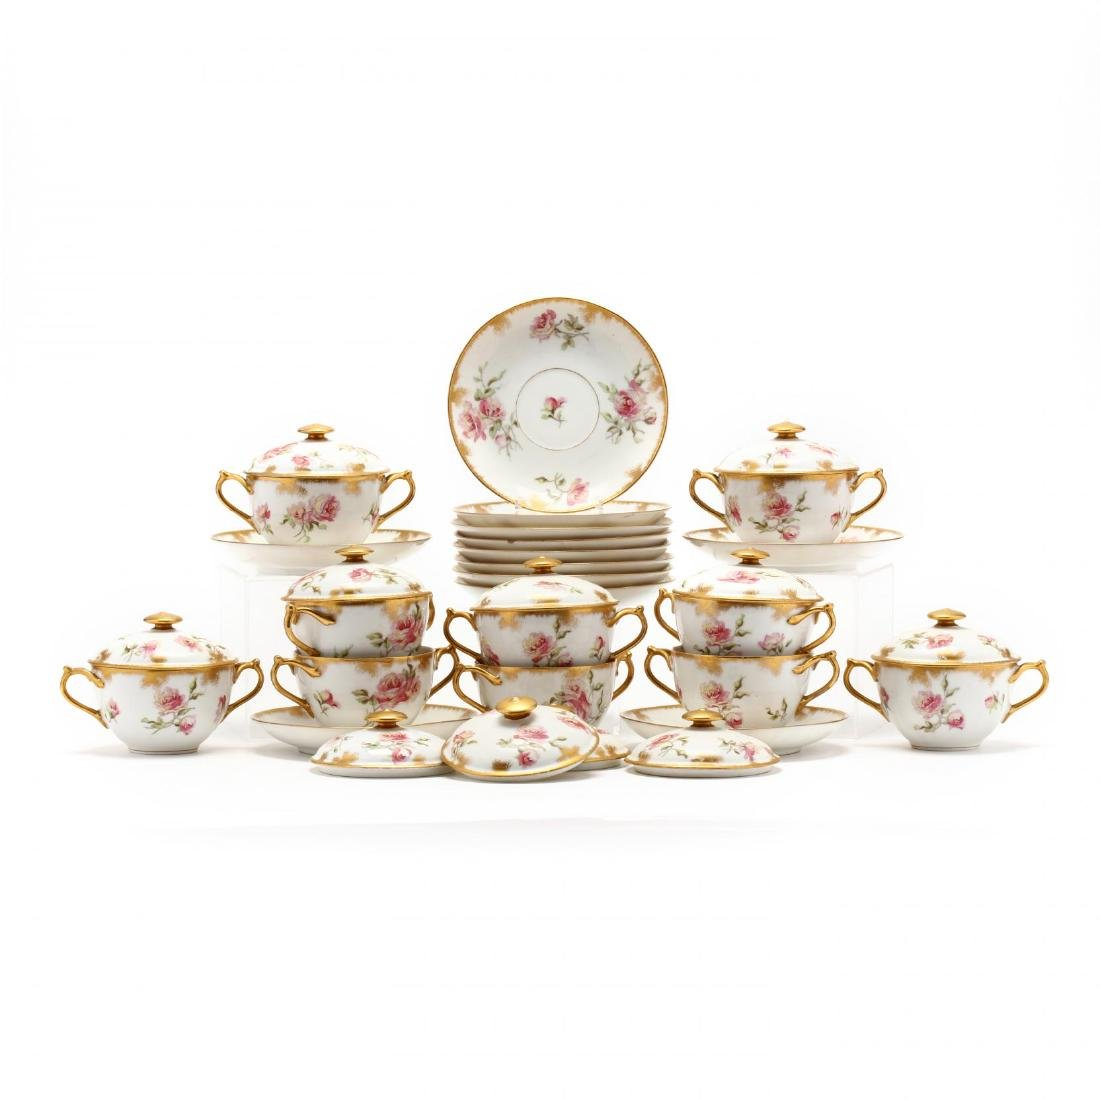 A Set of Limoges Bouillon Cups & Saucers with Covers